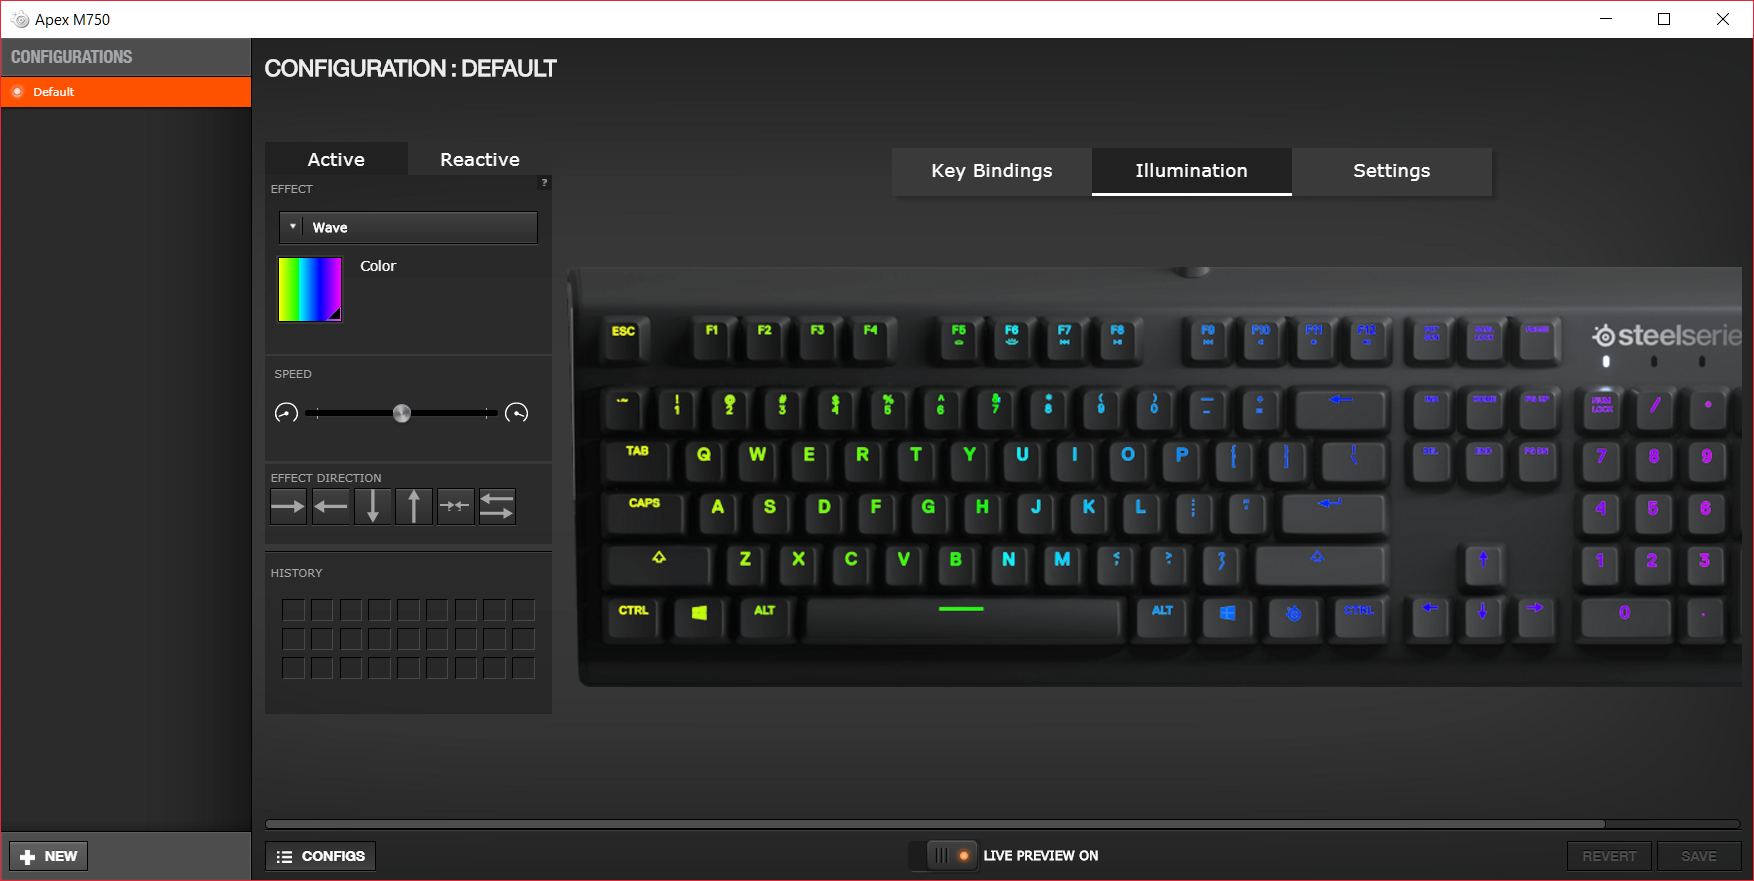 The SteelSeries Engine 3 Software - The SteelSeries Apex M750